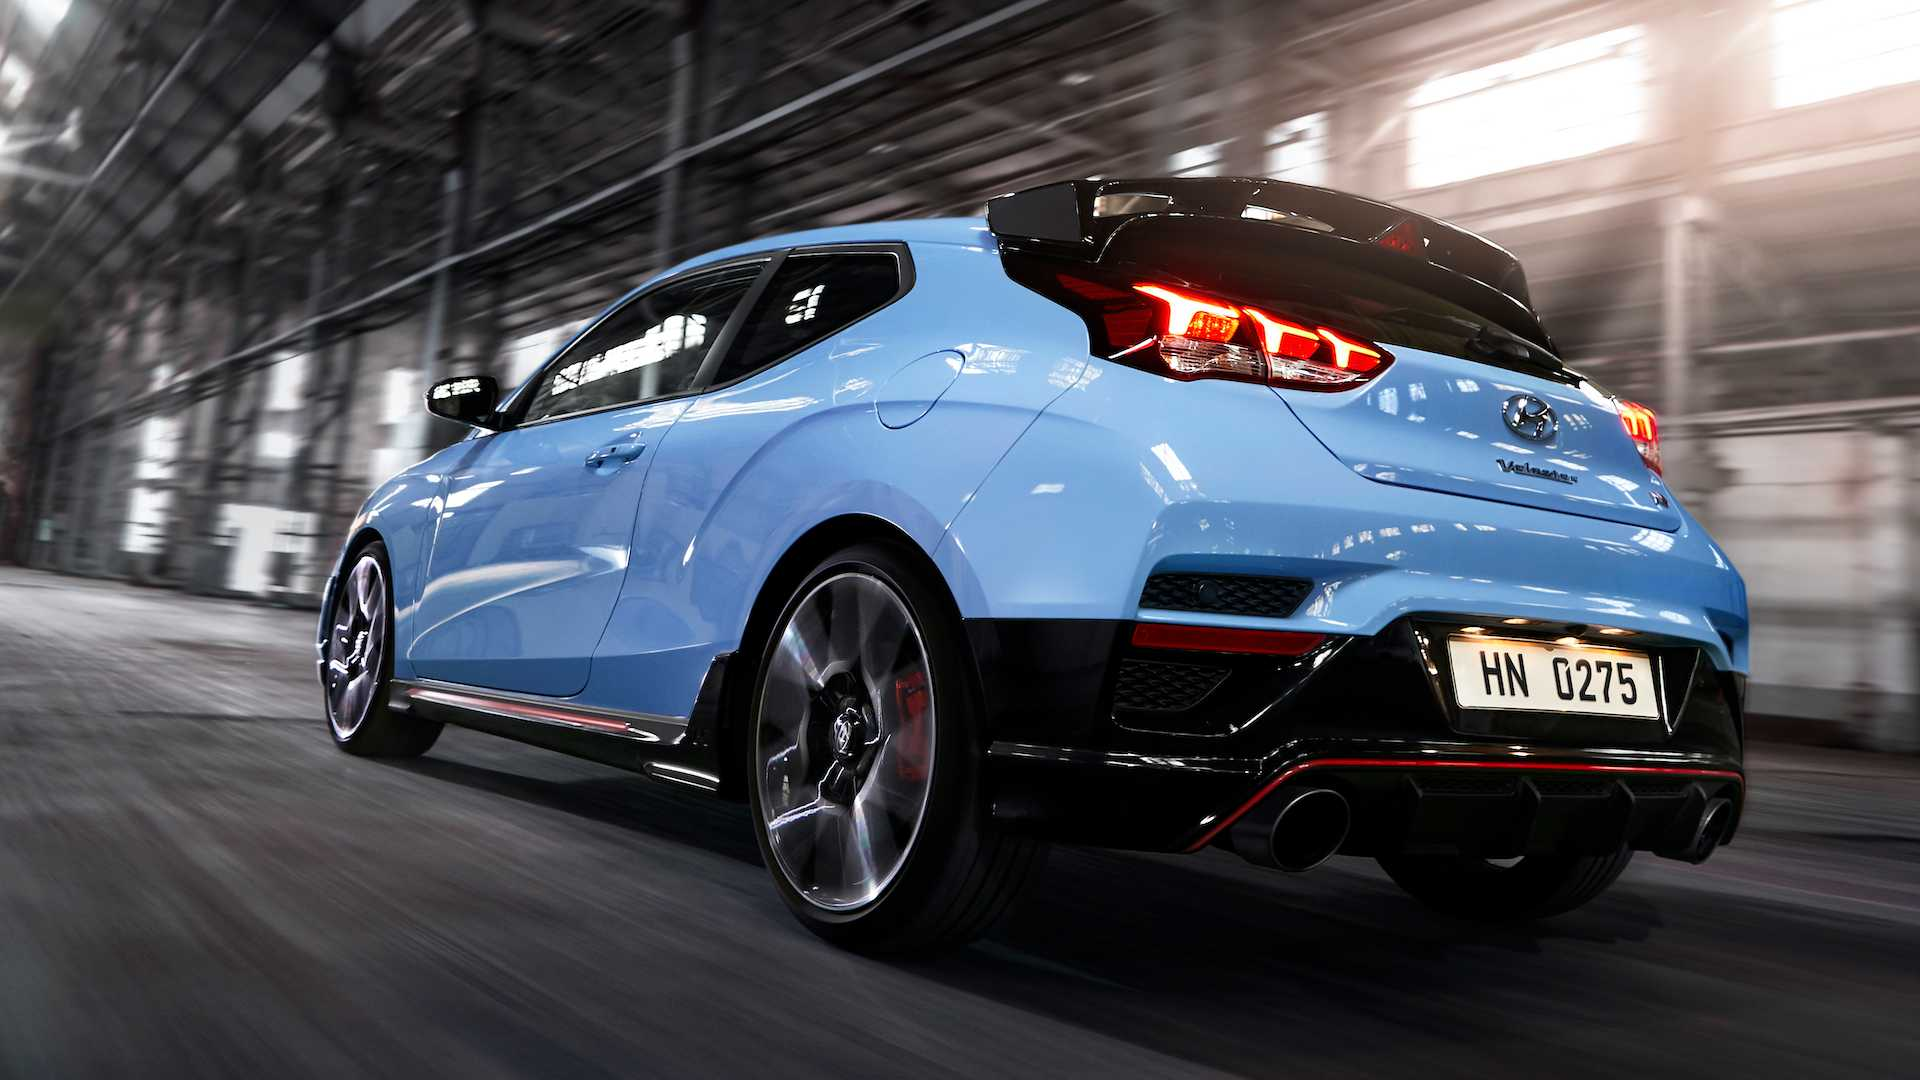 2020 Hyundai Veloster New Review